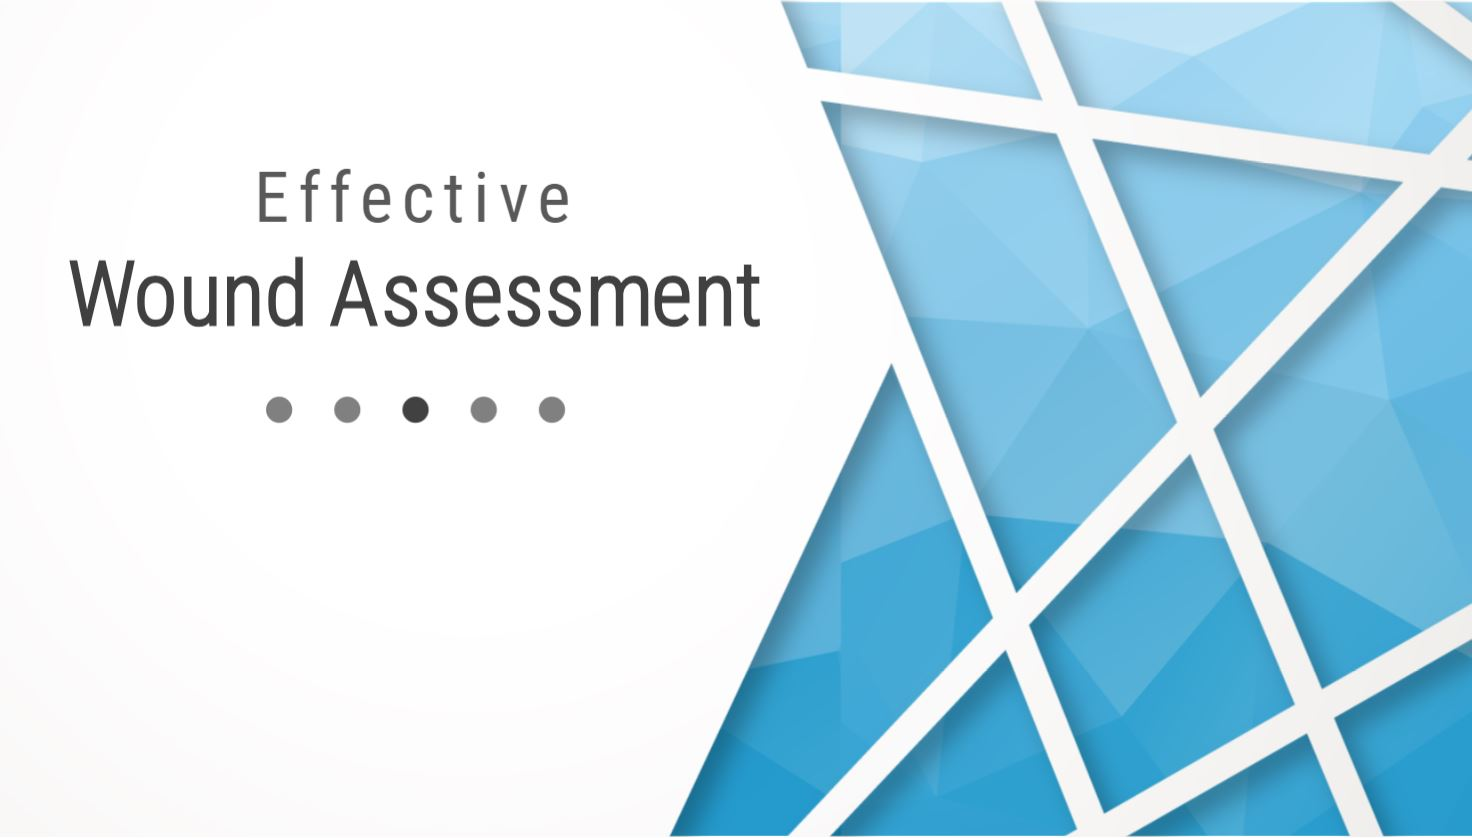 Effective Wound Assessment